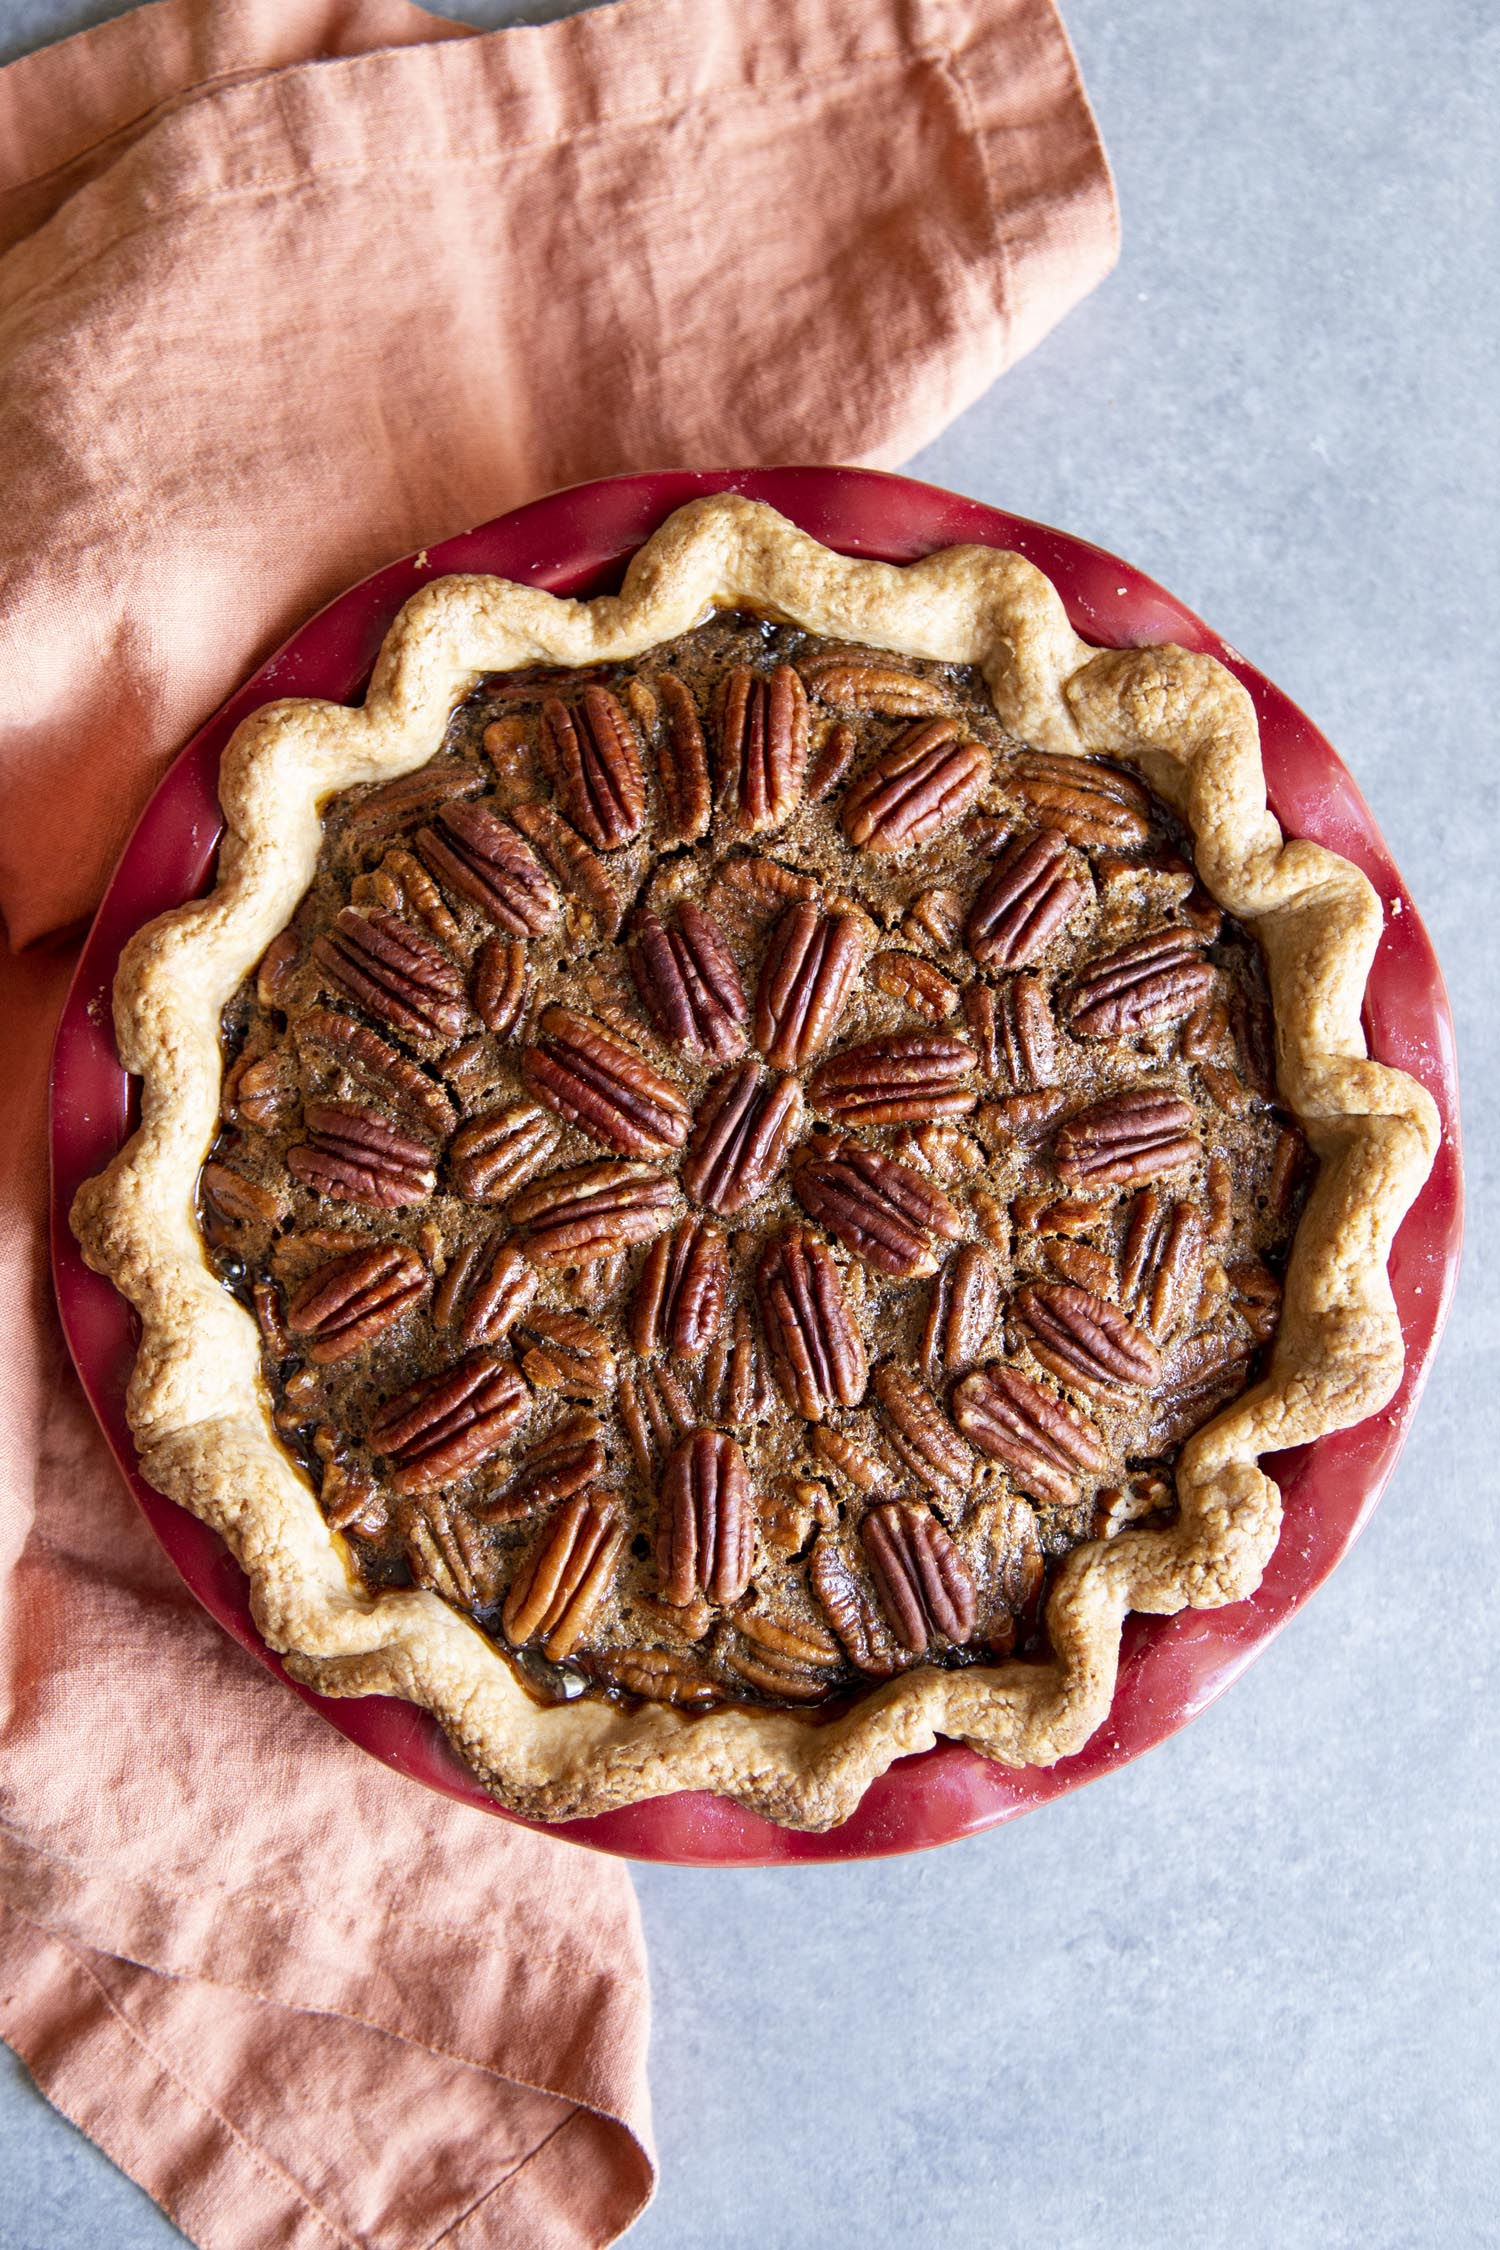 Rich, decadent Pecan pie.